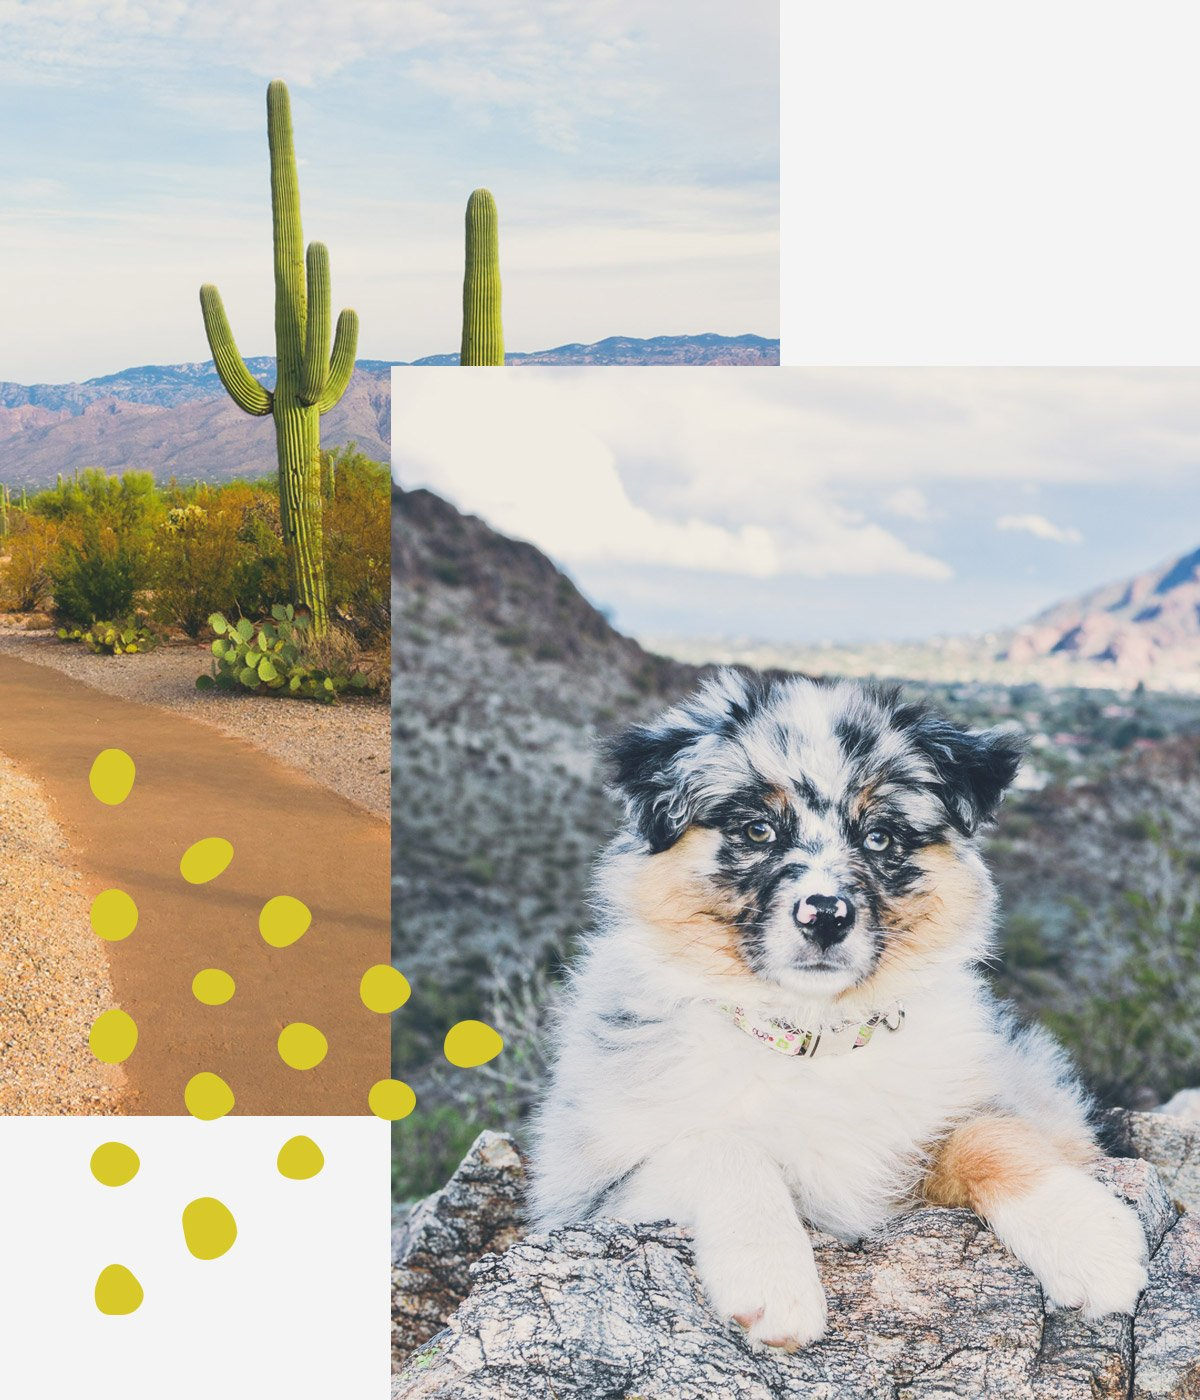 Dog sitting in desert with a cactus